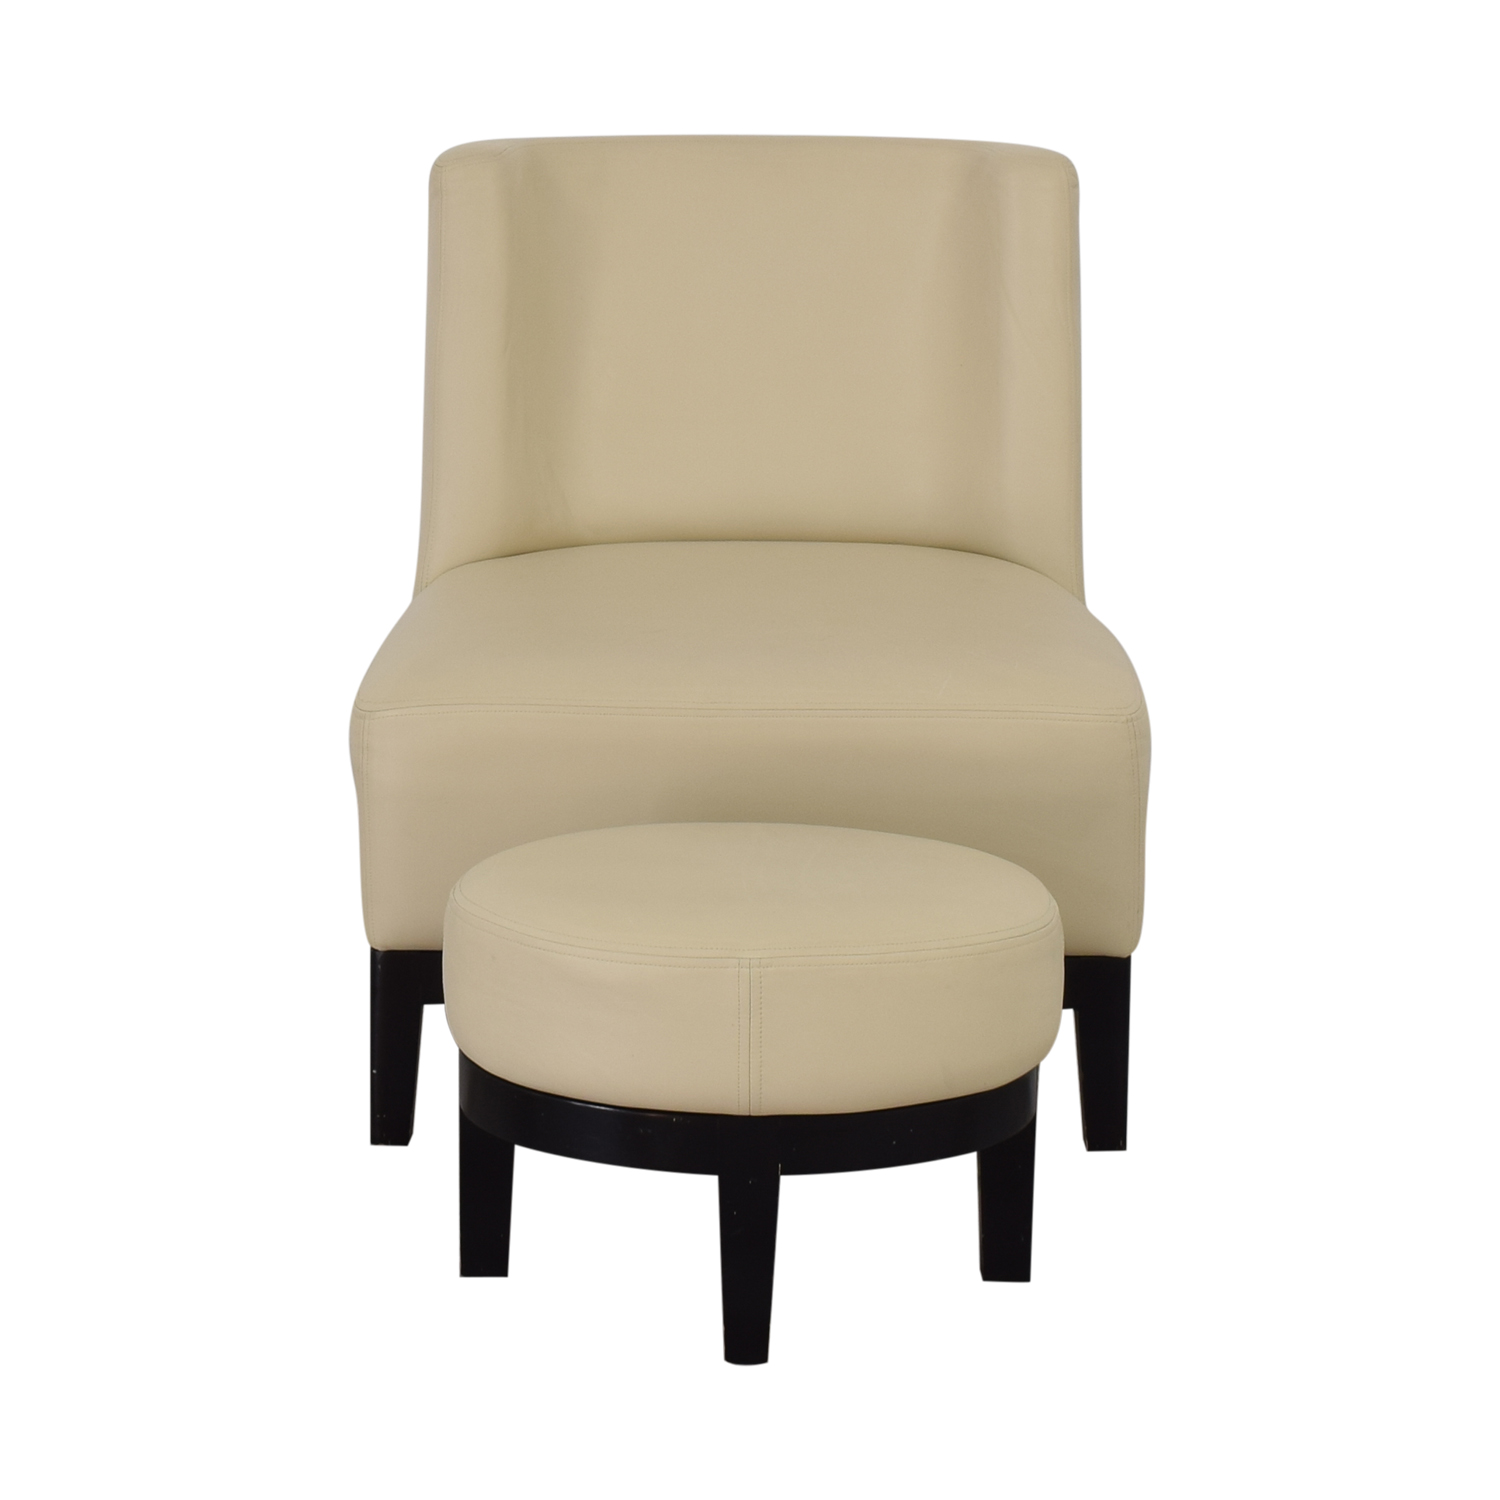 Sensational 77 Off Armless Lounge Chair And Footstool Chairs Dailytribune Chair Design For Home Dailytribuneorg